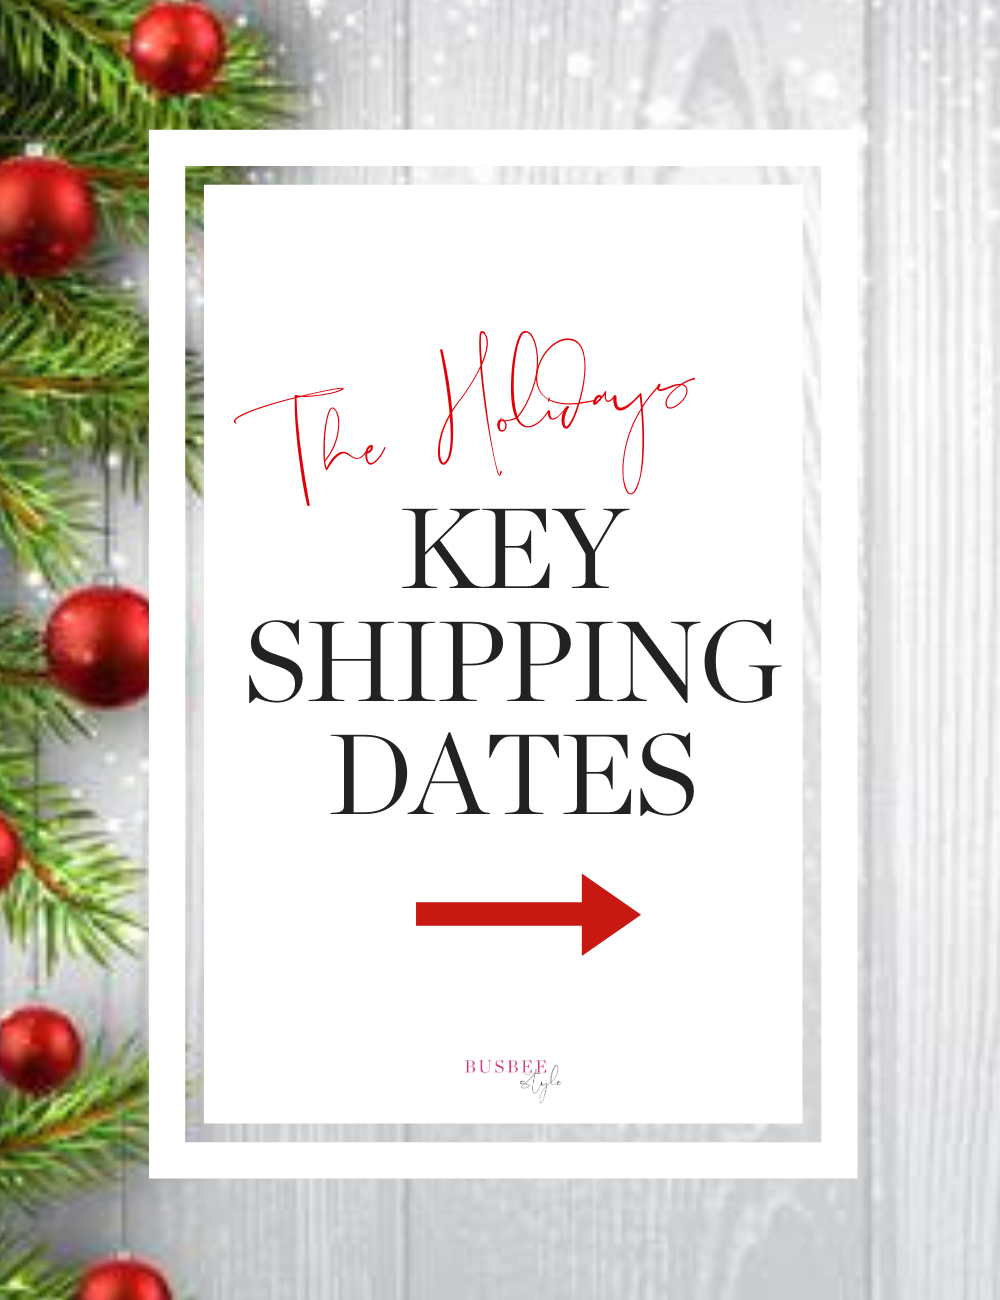 Key shipping dates for the holiday season 2019 on busbeestyle.com